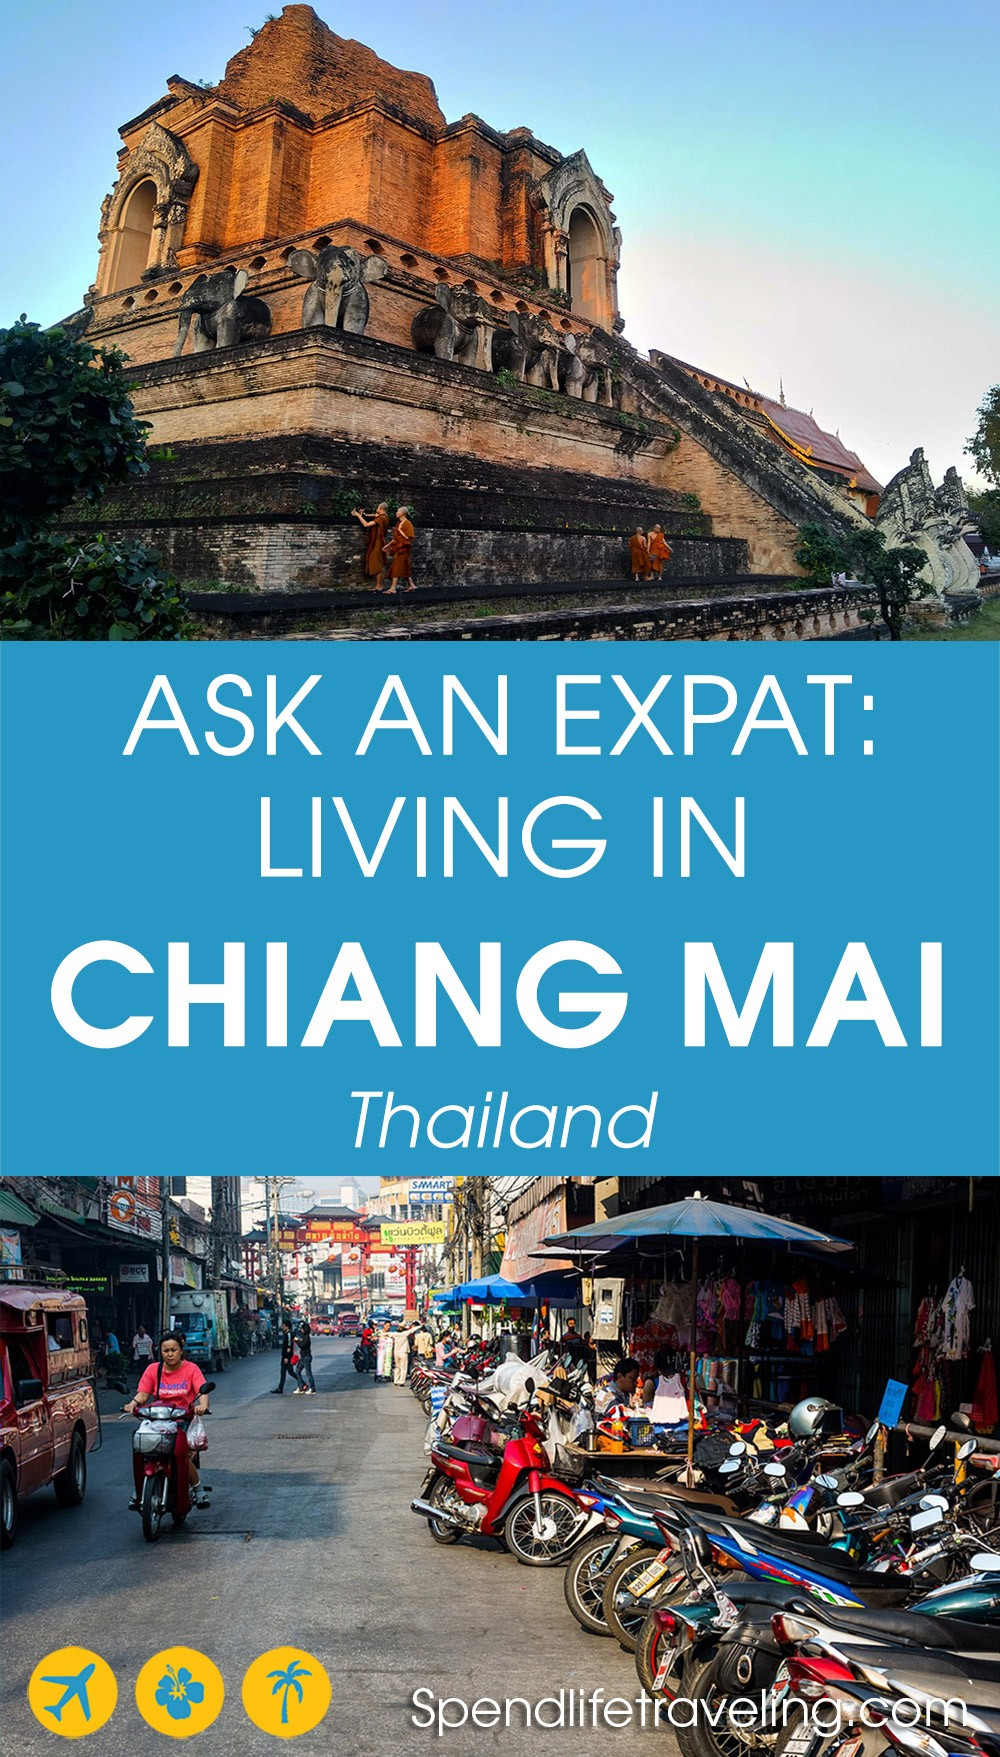 Interview about moving to and living in Chiang Mai as an expat. #ChiangMai #movingtoThailand #expatlife #moveabroad #lifeabroad